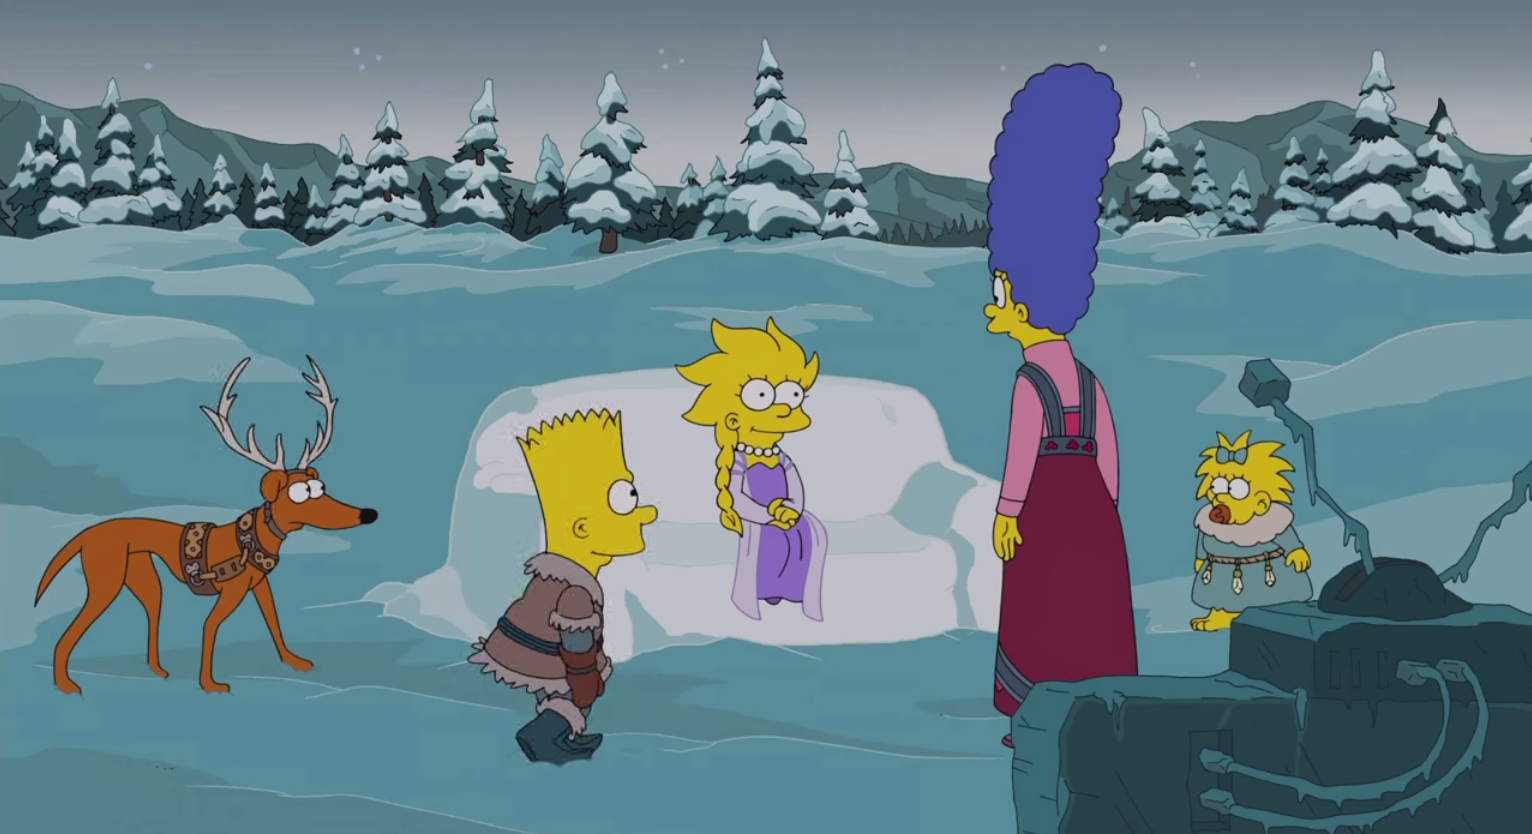 The 2014 Simpsons holiday intro: This time, with more Olaf